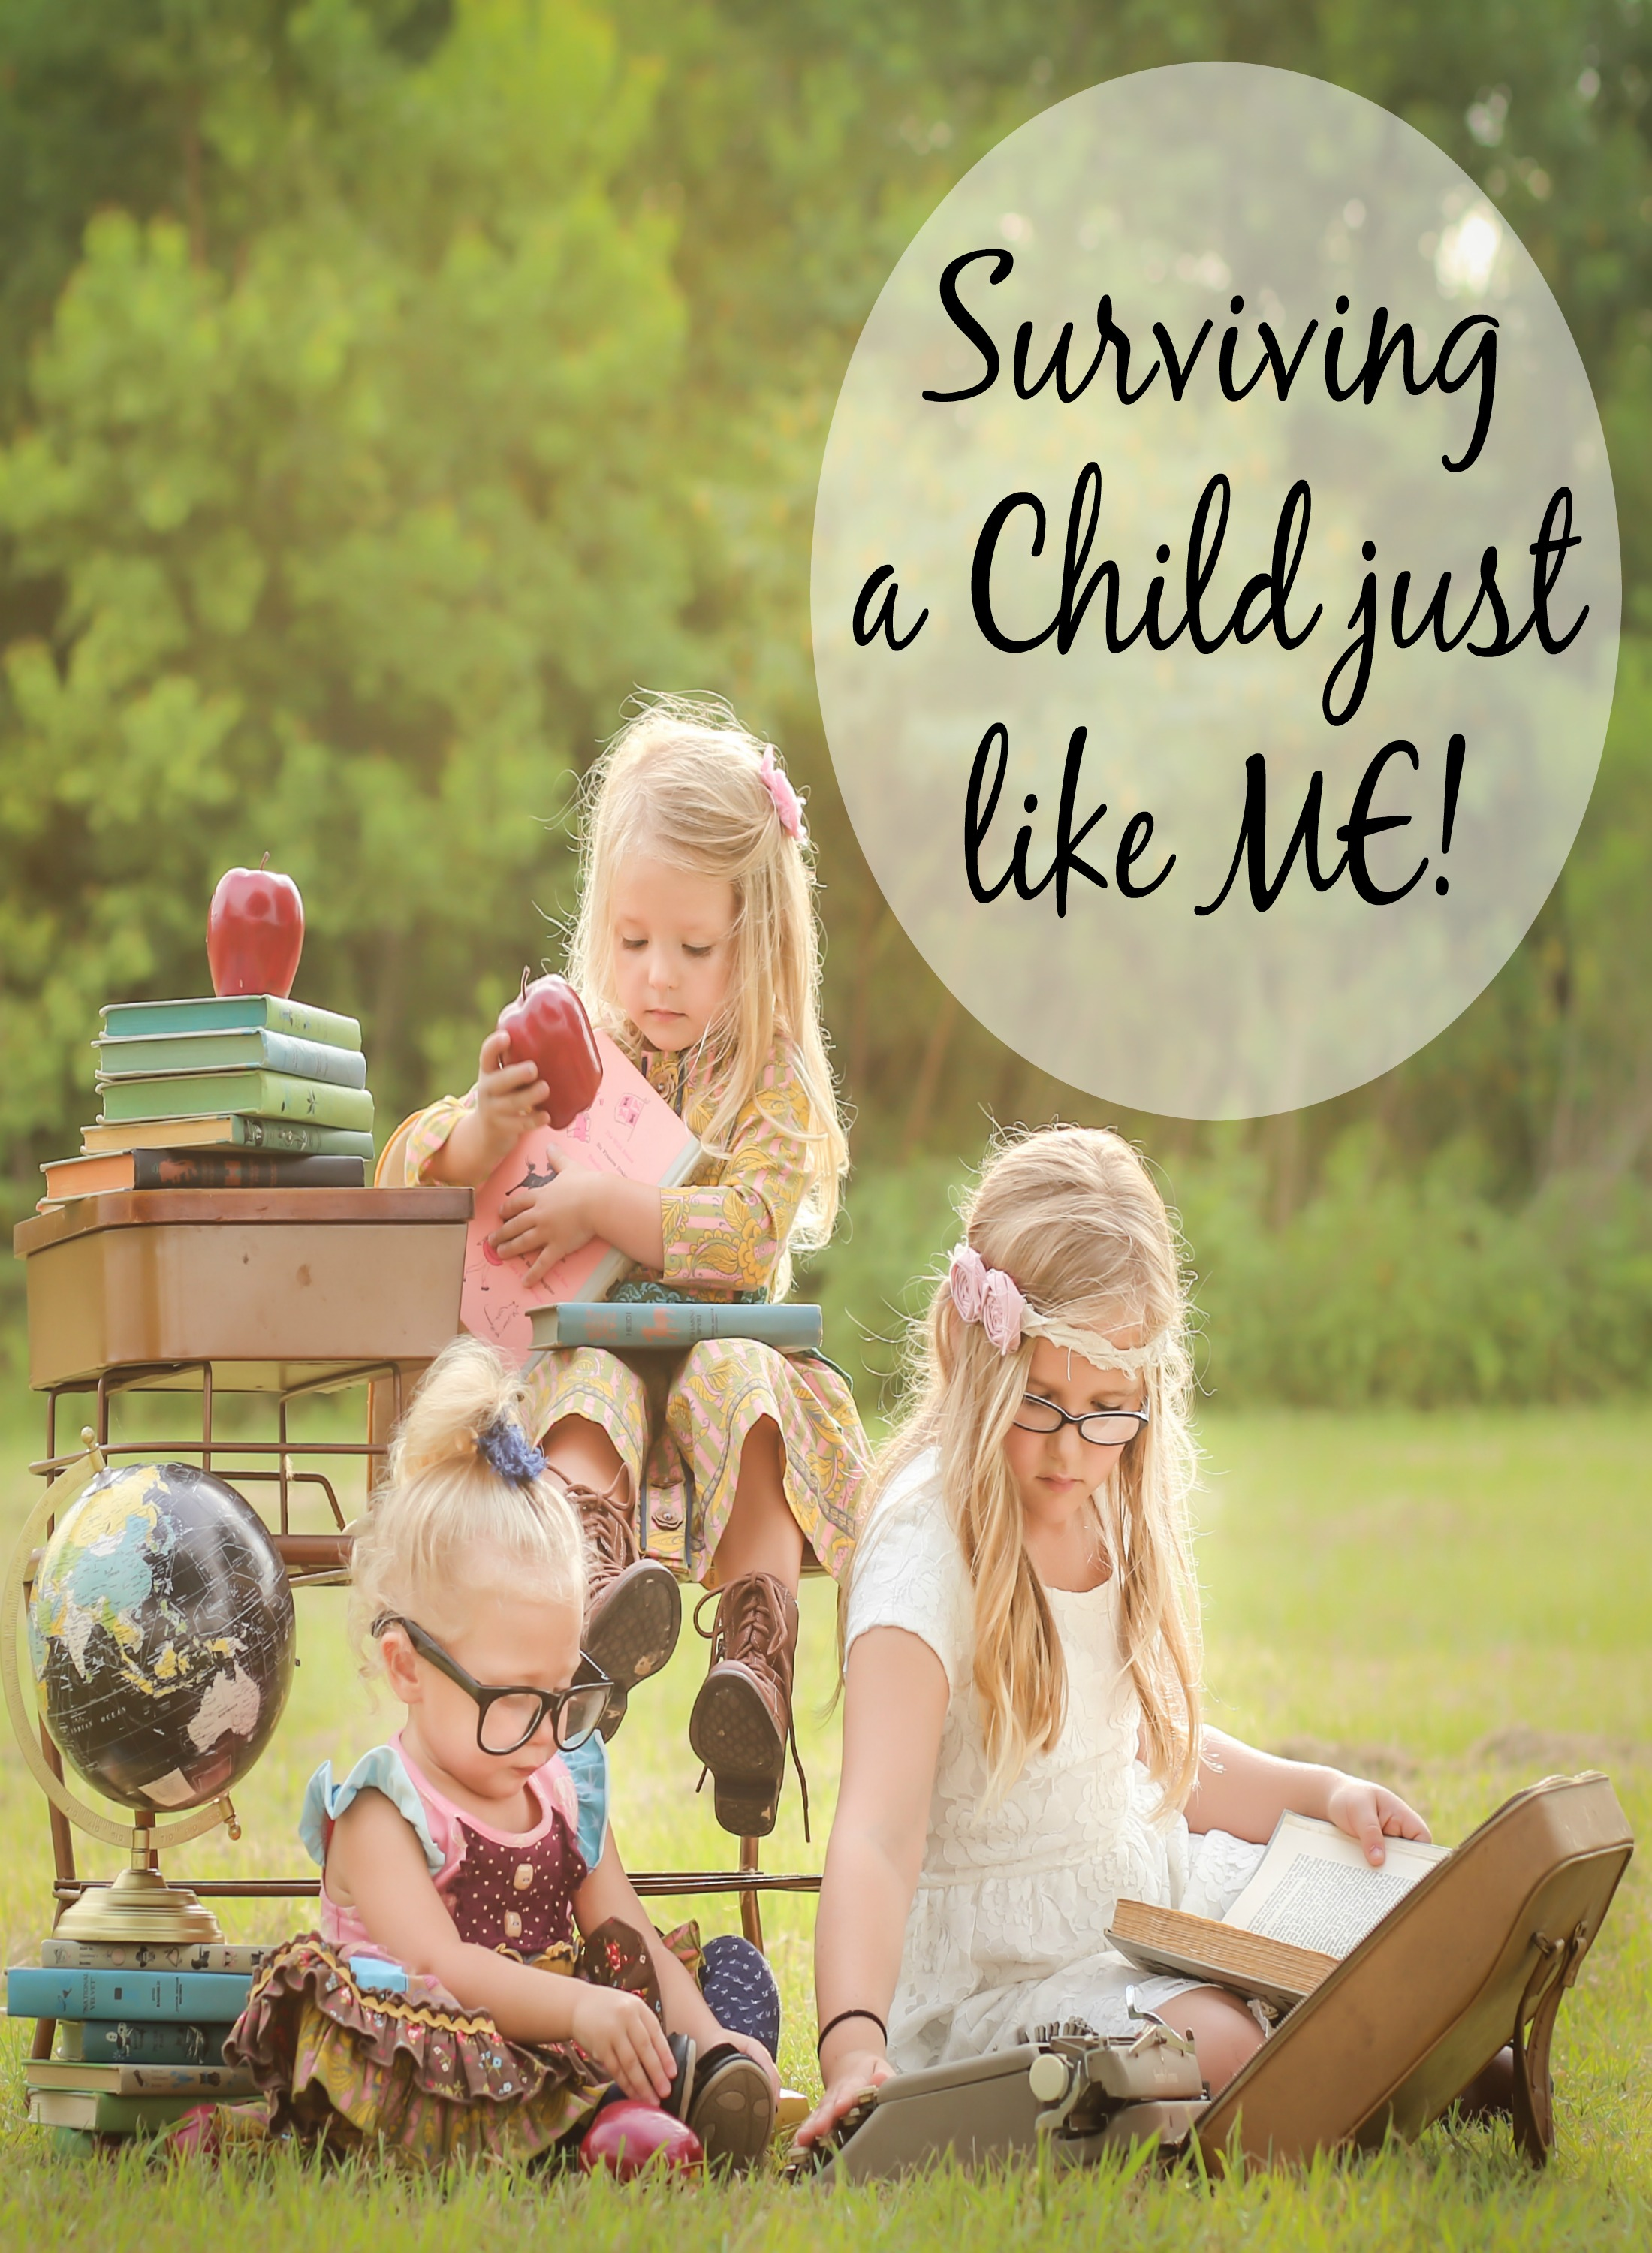 Surviving a Child just Like Me